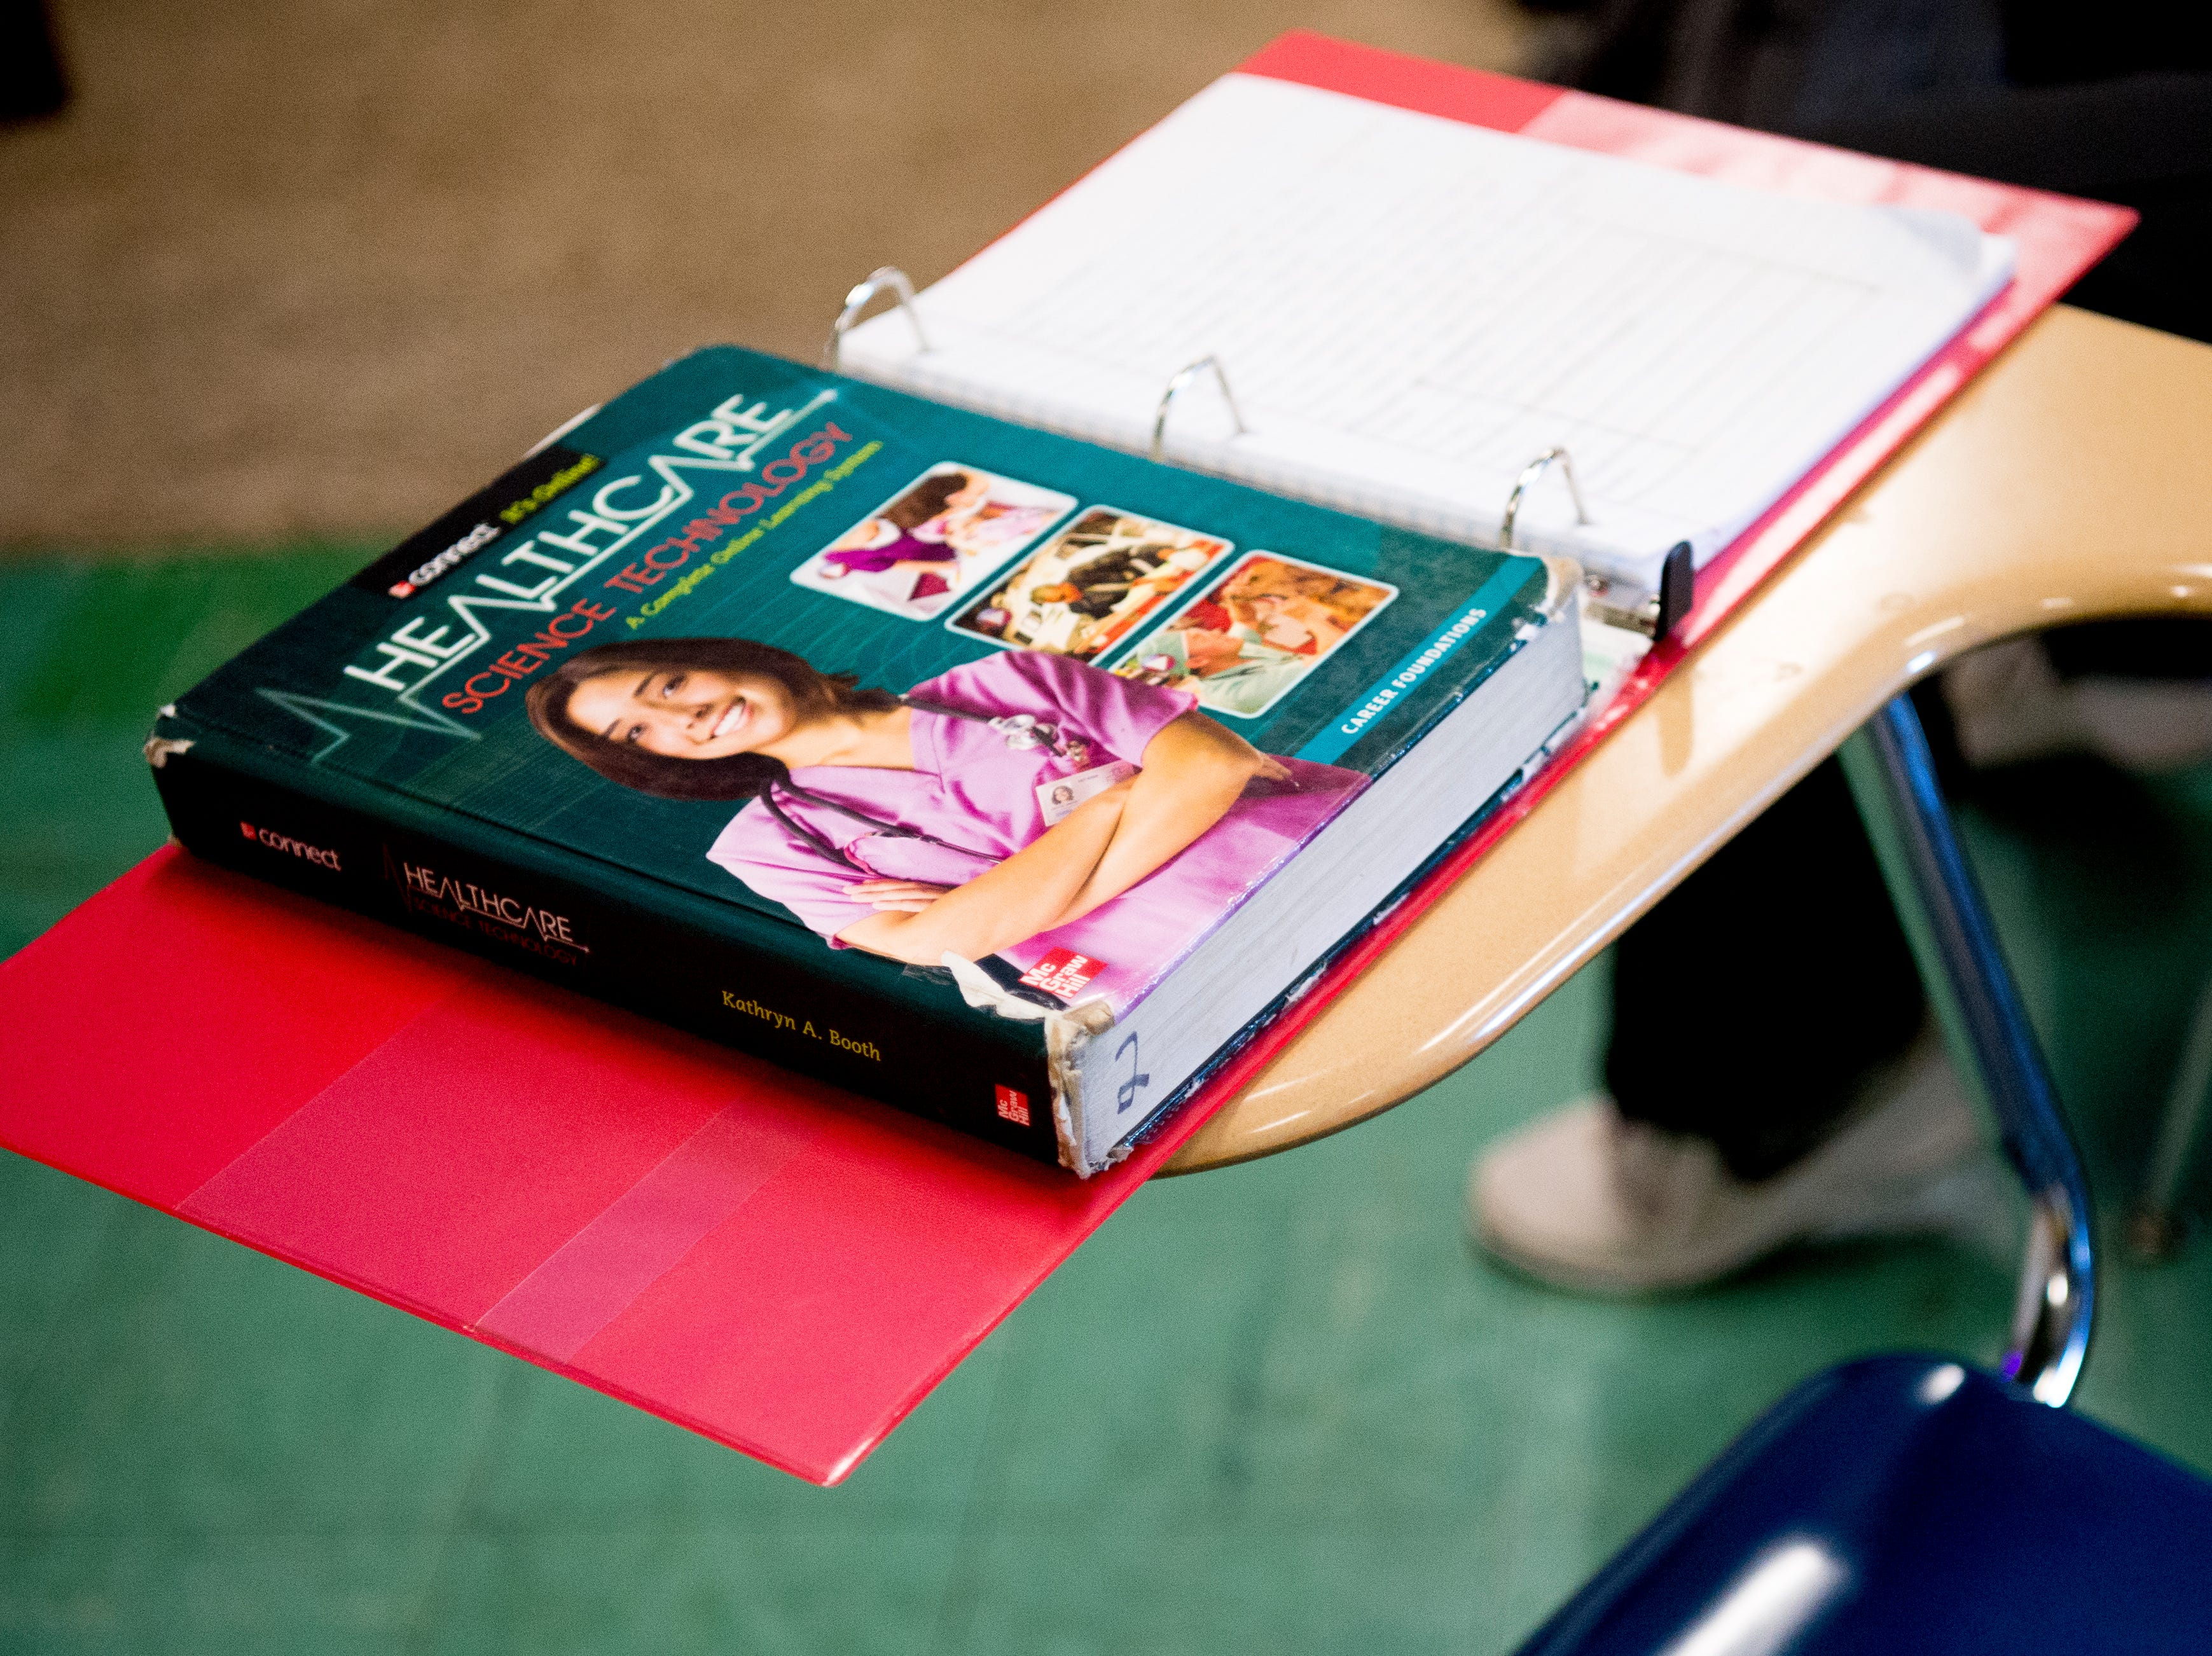 A textbook on health care science technology sits on a desk in Anita Crook's medical therapeutics class at Maryville High School in Maryville, Tennessee, on Friday, January 11, 2019. More time with teachers as well as time to study and work on homework are some of the benefits students enjoy when on block schedules.